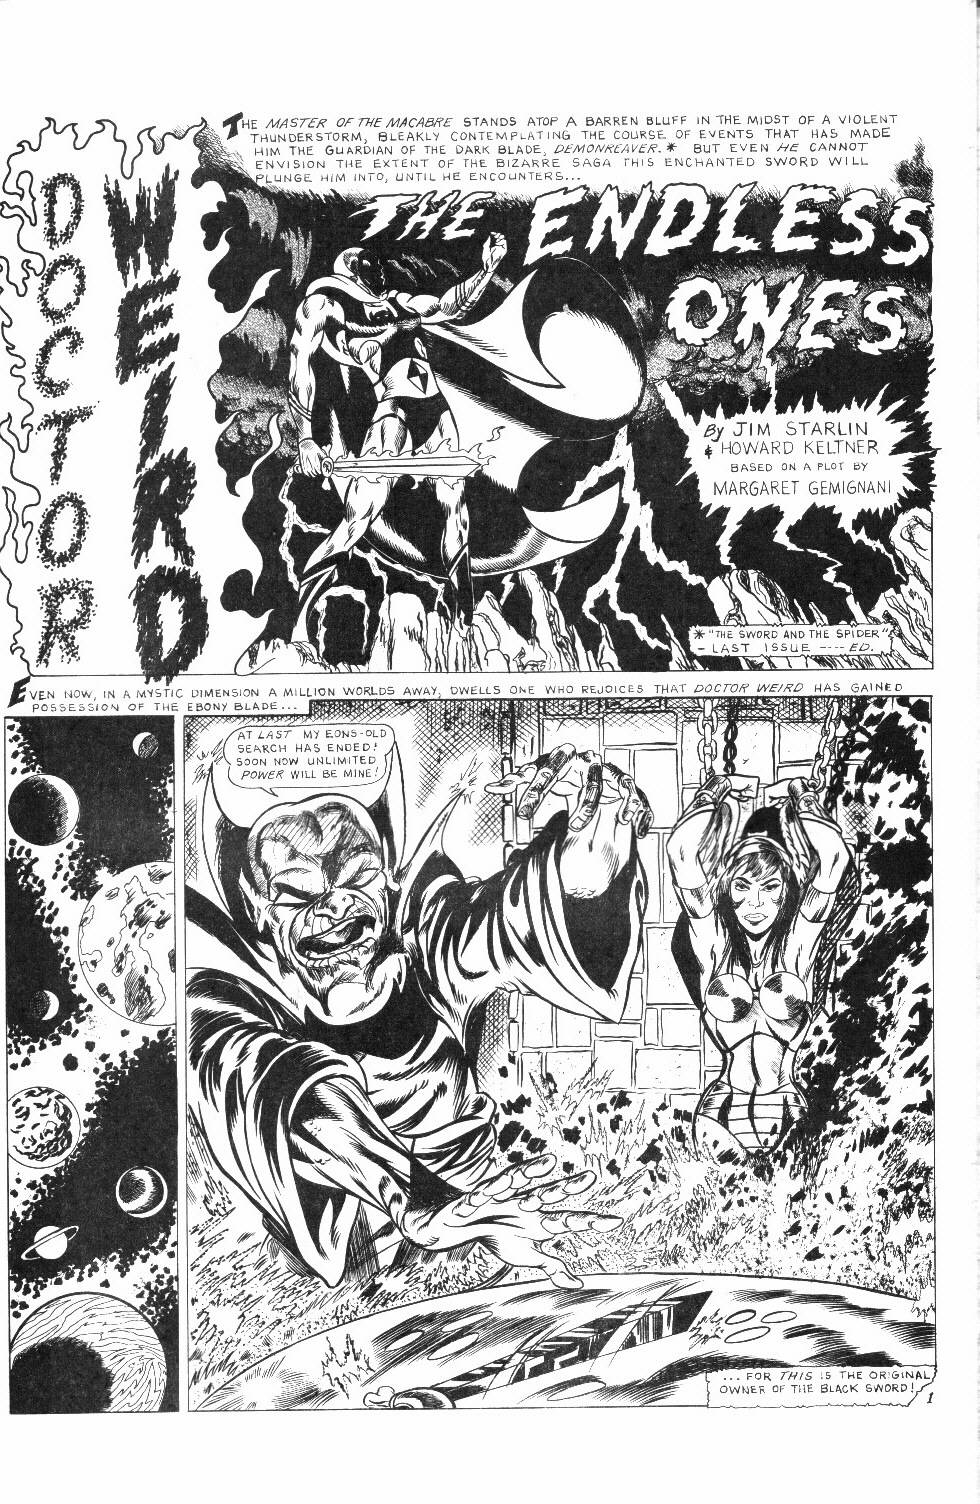 Read online Dr. Weird Special comic -  Issue # Full - 43